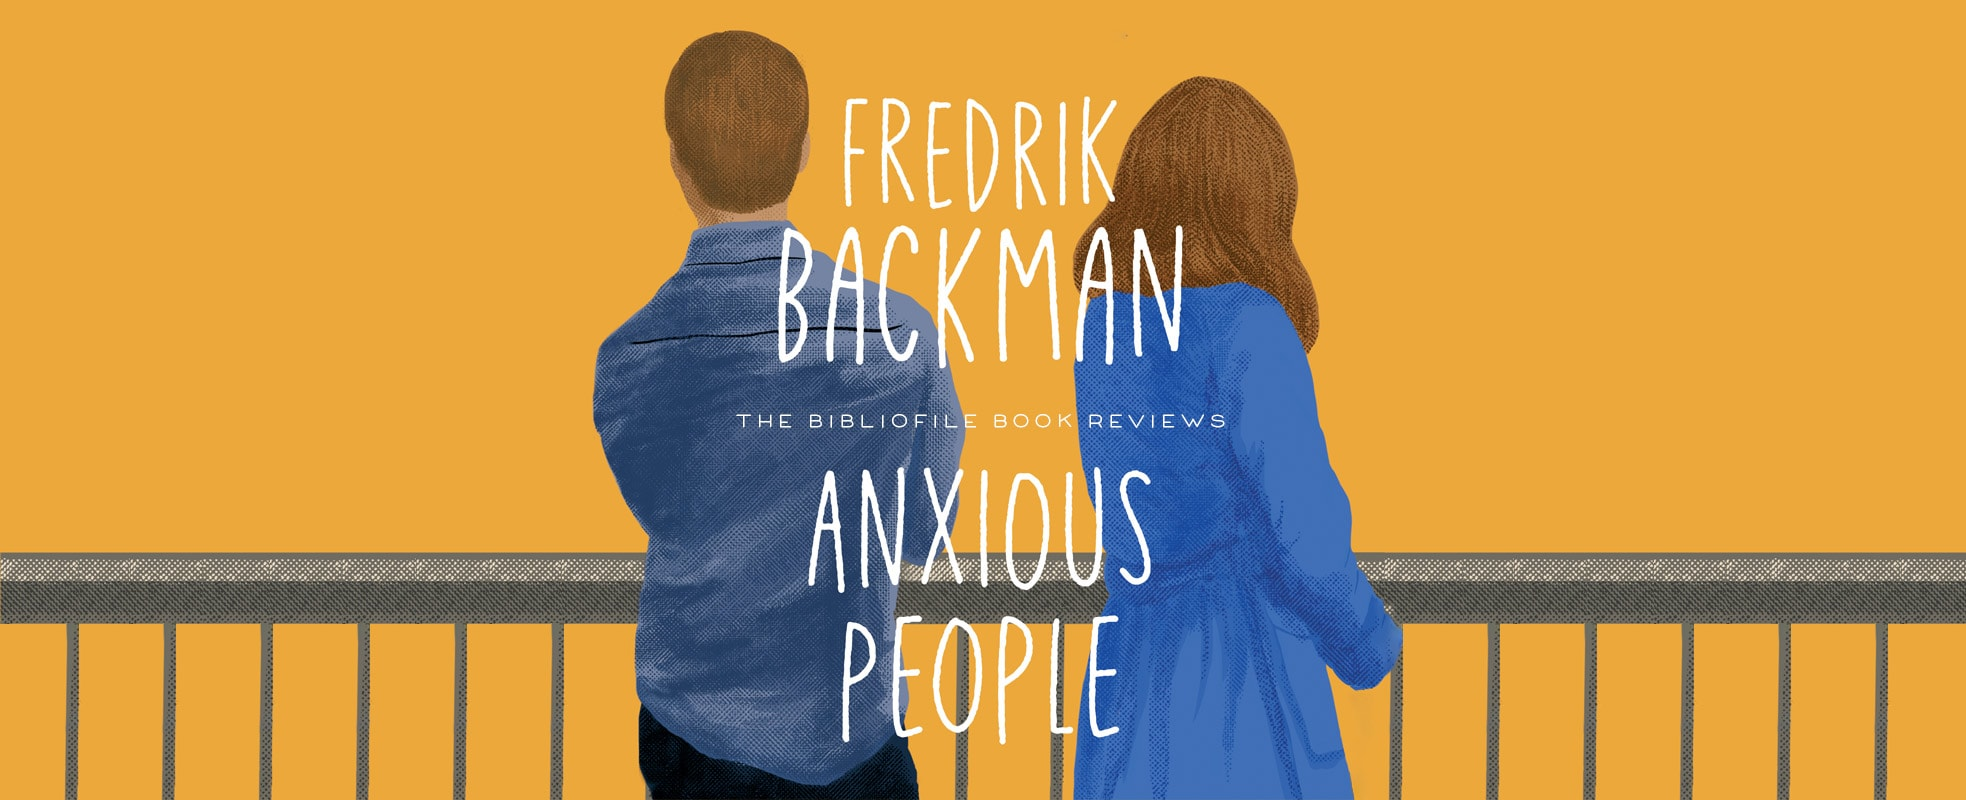 anxious people by fredrik backman Book Summary, Chapter-by-Chapter Summary, Detailed Plot Synopsis, Book Review